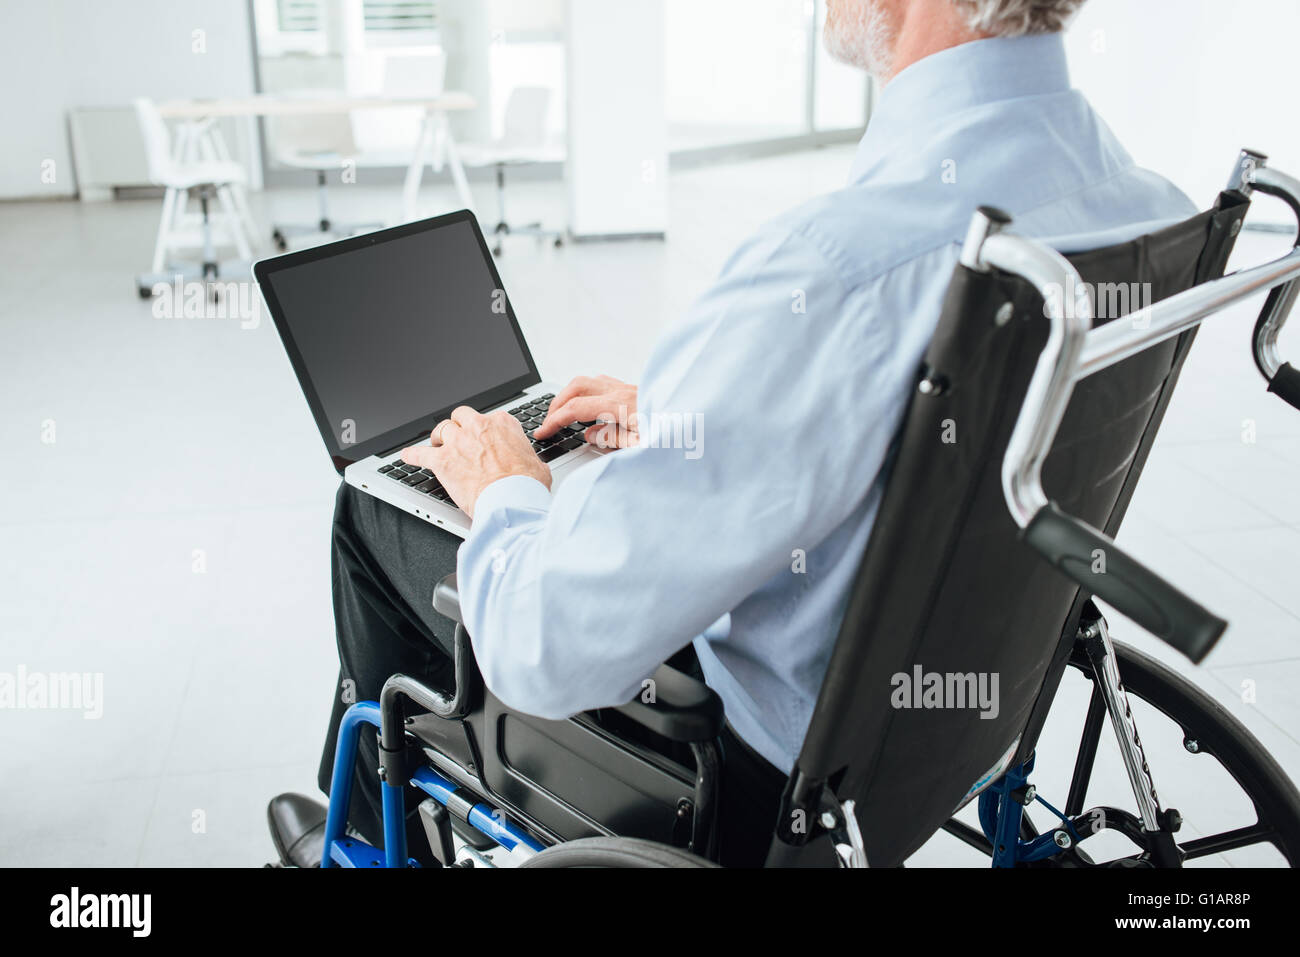 Corporate businessman in wheelchair using a laptop and networking, unrecognizable person - Stock Image